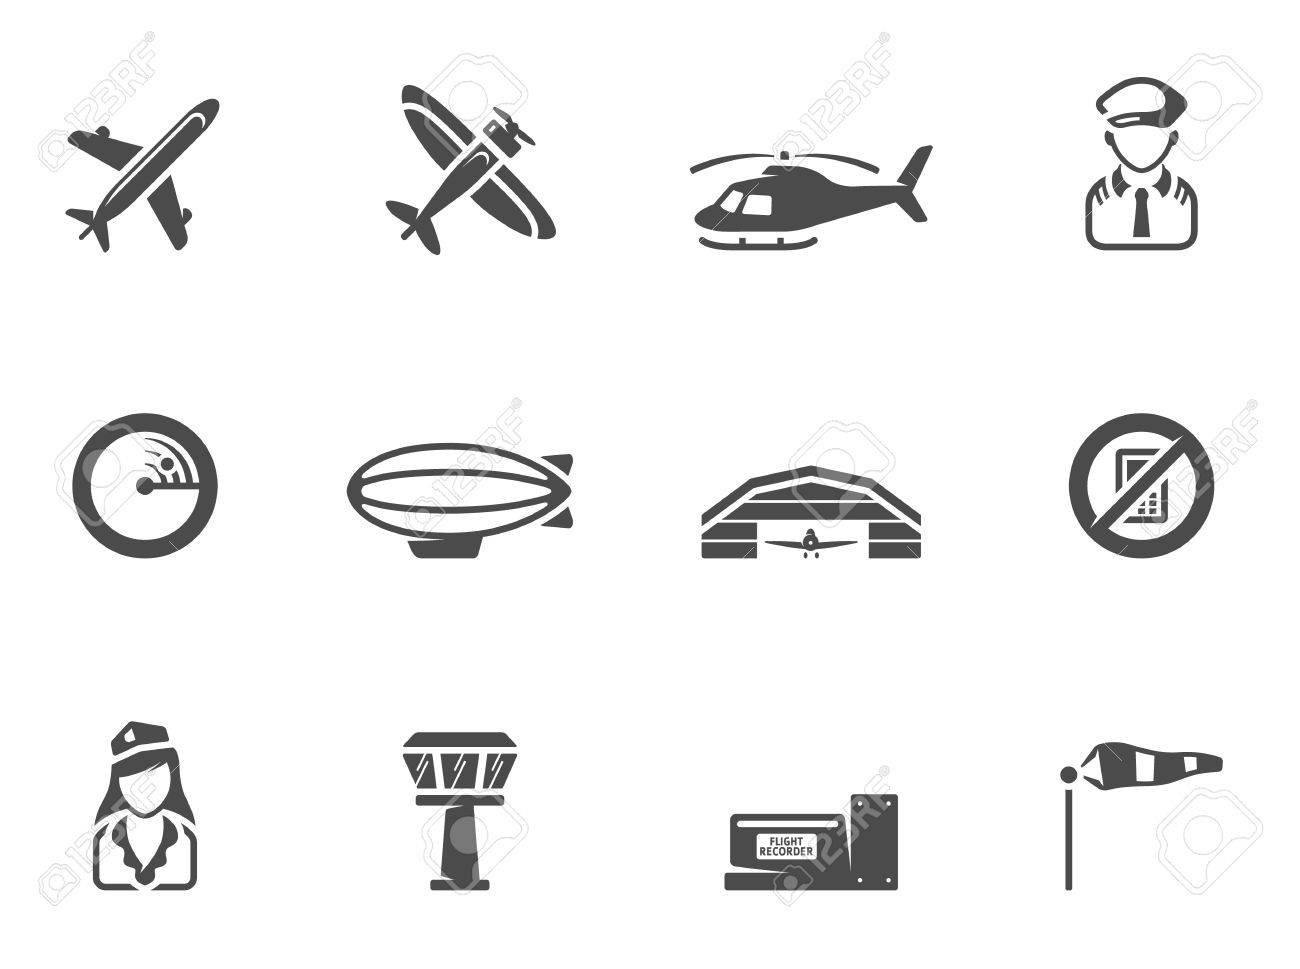 Aviation icons in single color. EPS 10.  Font used: Collaborate Bold Stock Vector - 23775153